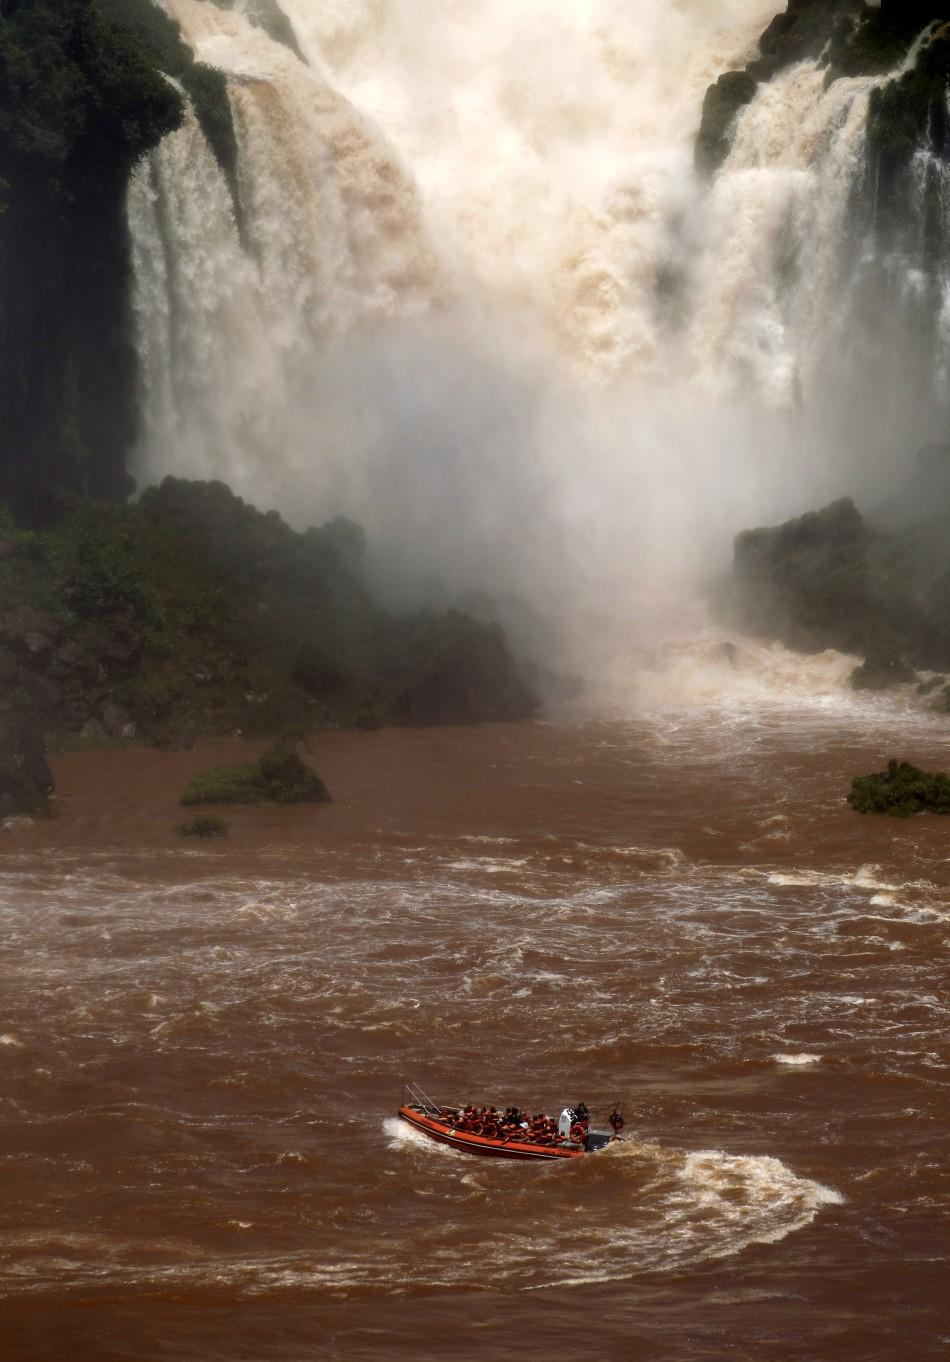 A boat carrying tourists sails by the Iguazu Falls on the border of Argentina's province of Misiones and Brazil's State of Parana.